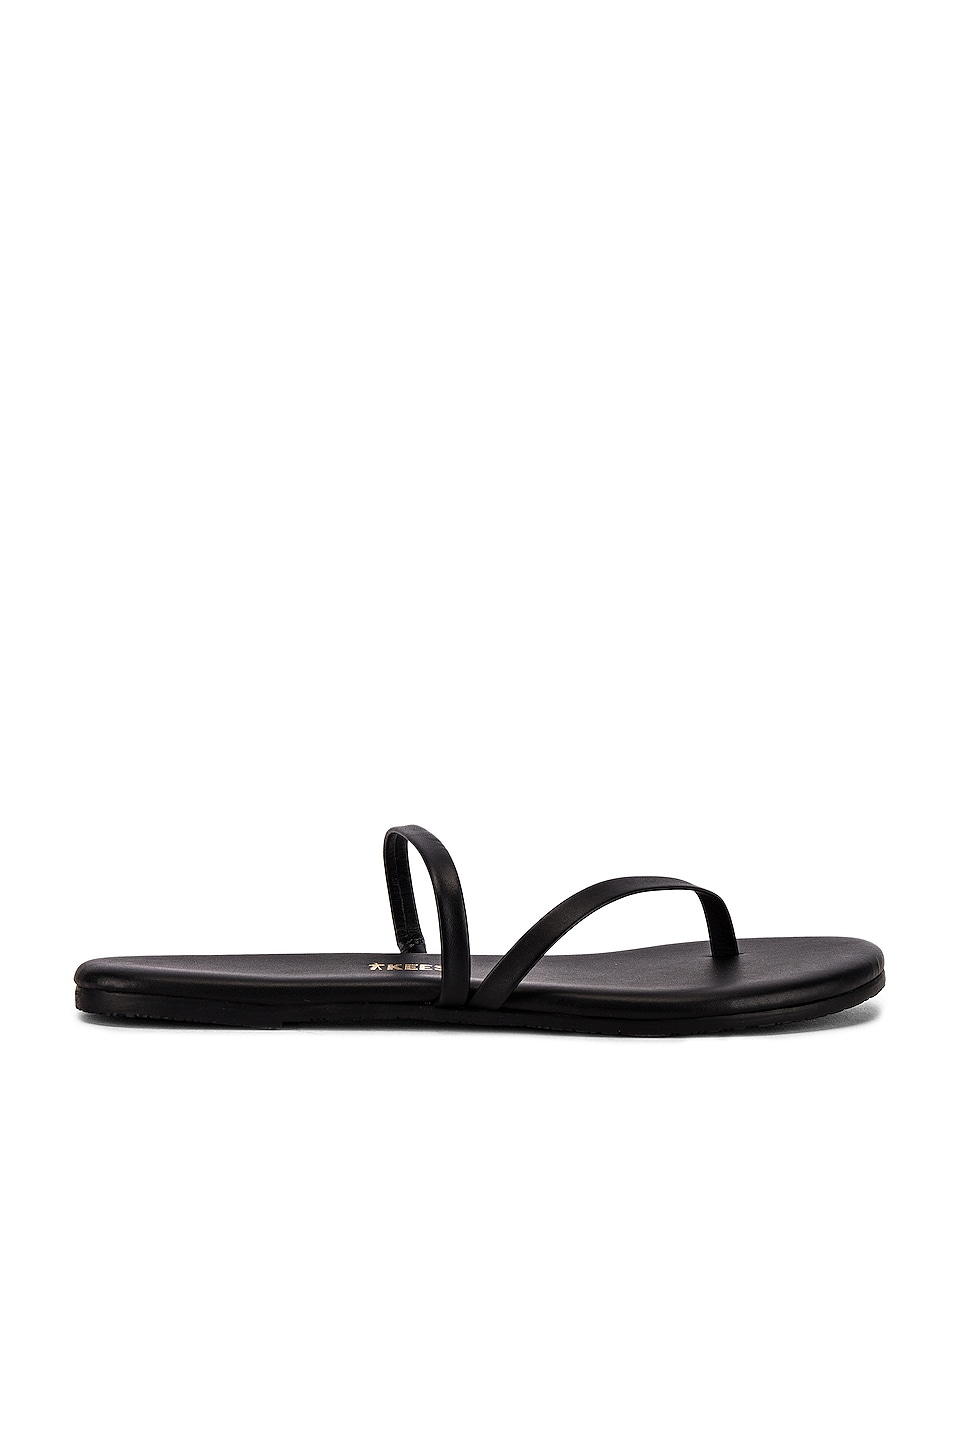 TKEES Sarit Sandal in Black